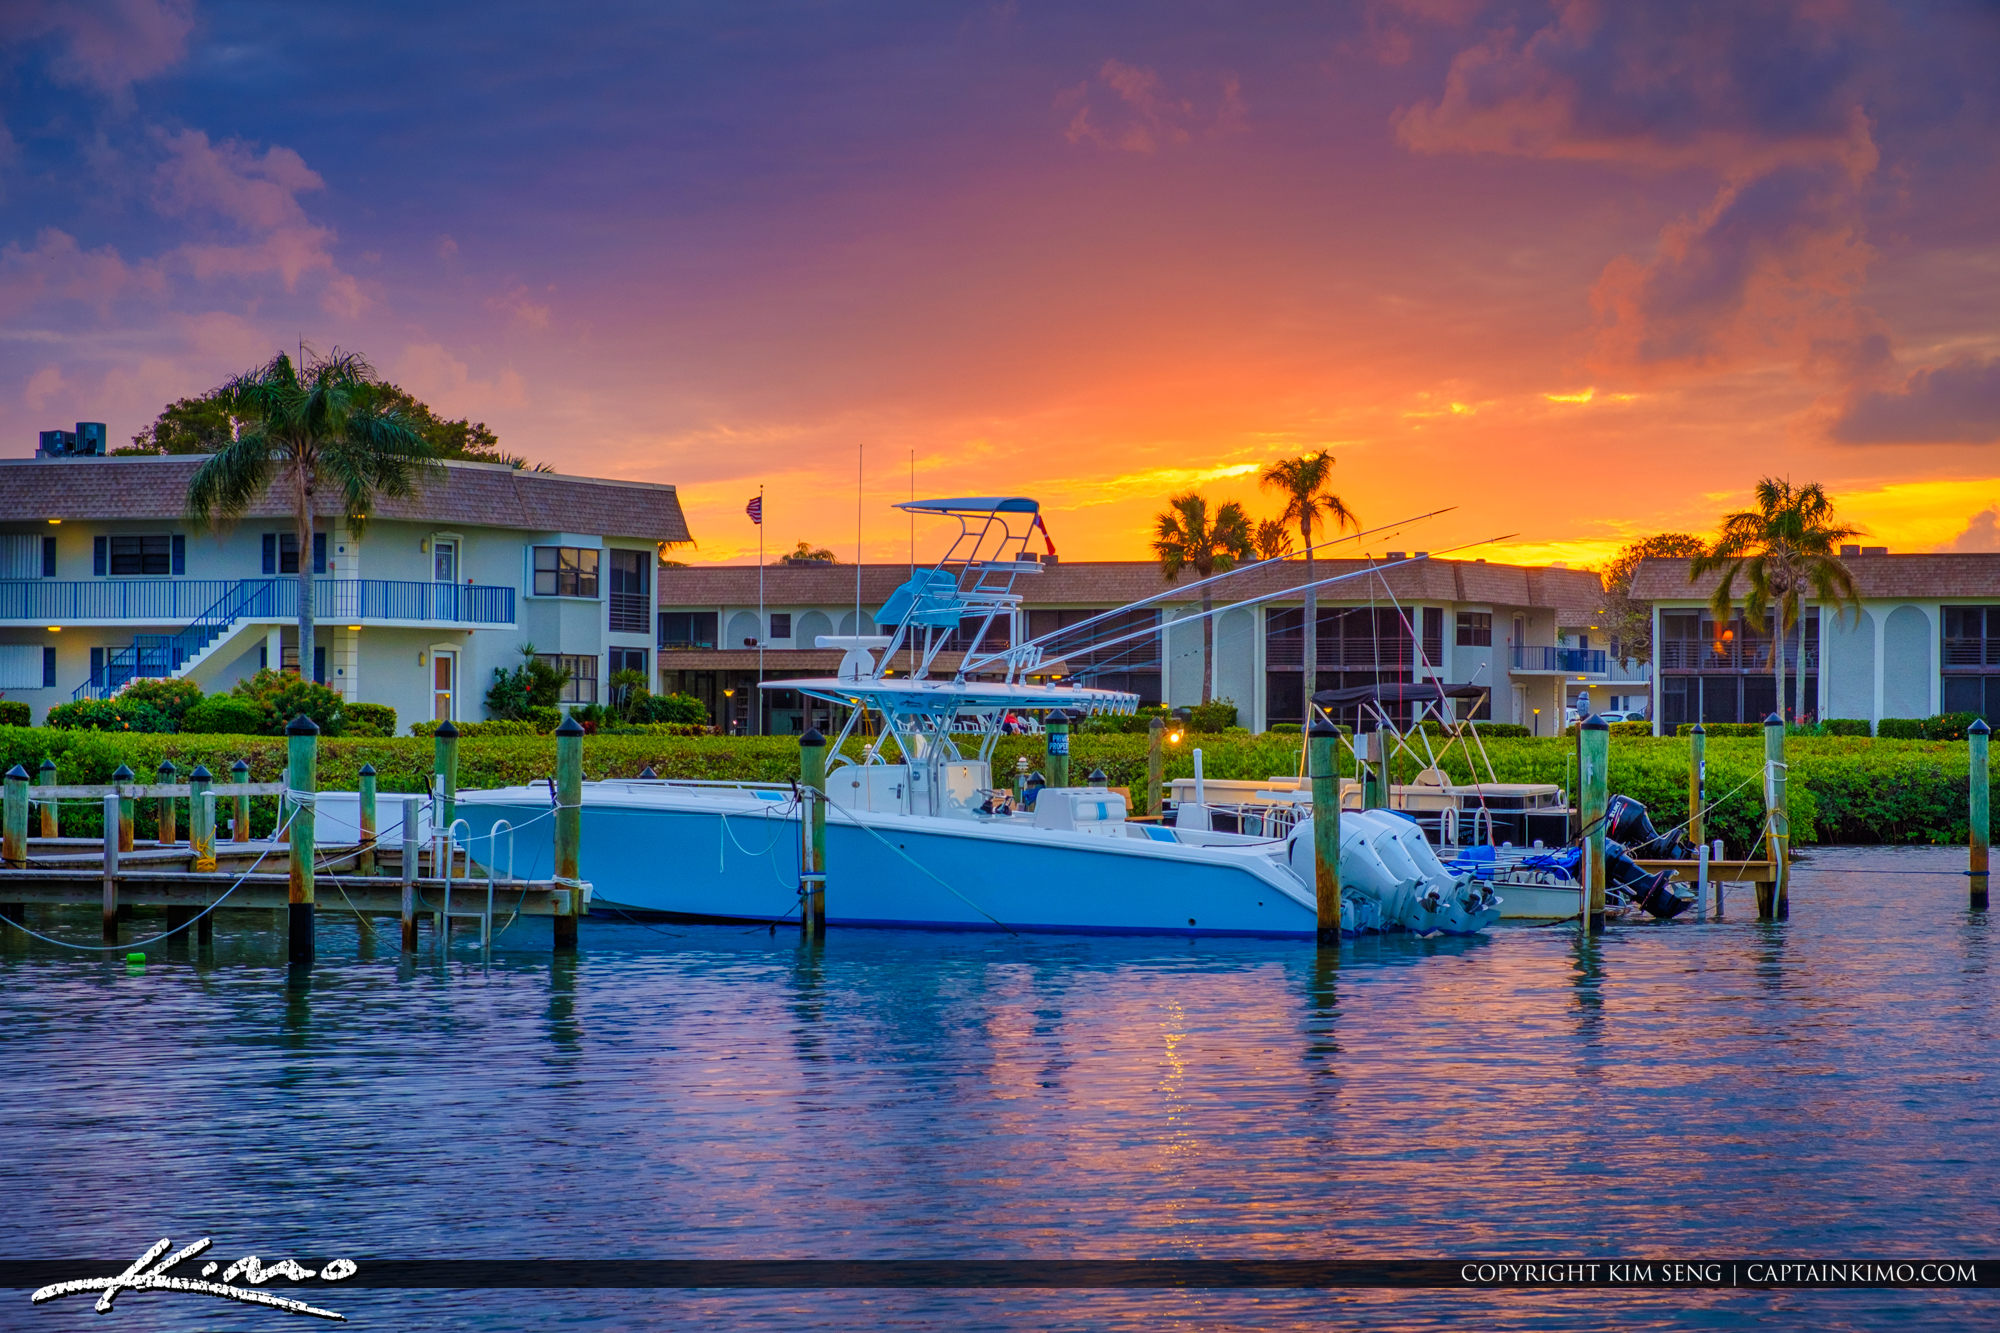 Waterfront Property with Boat at Jupiter Florida